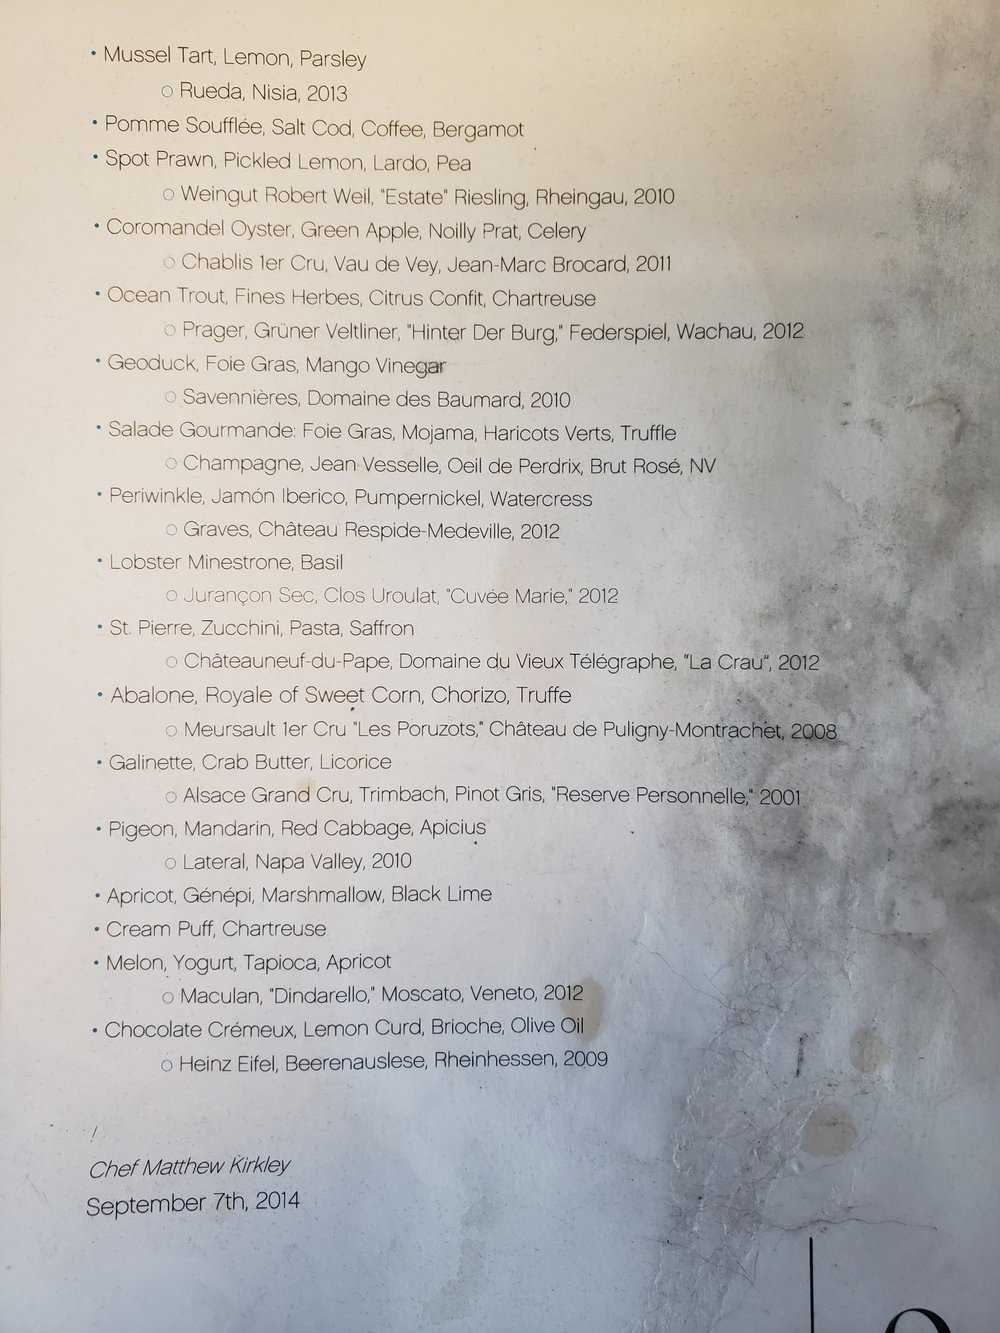 The very worn L20 menu from our visit